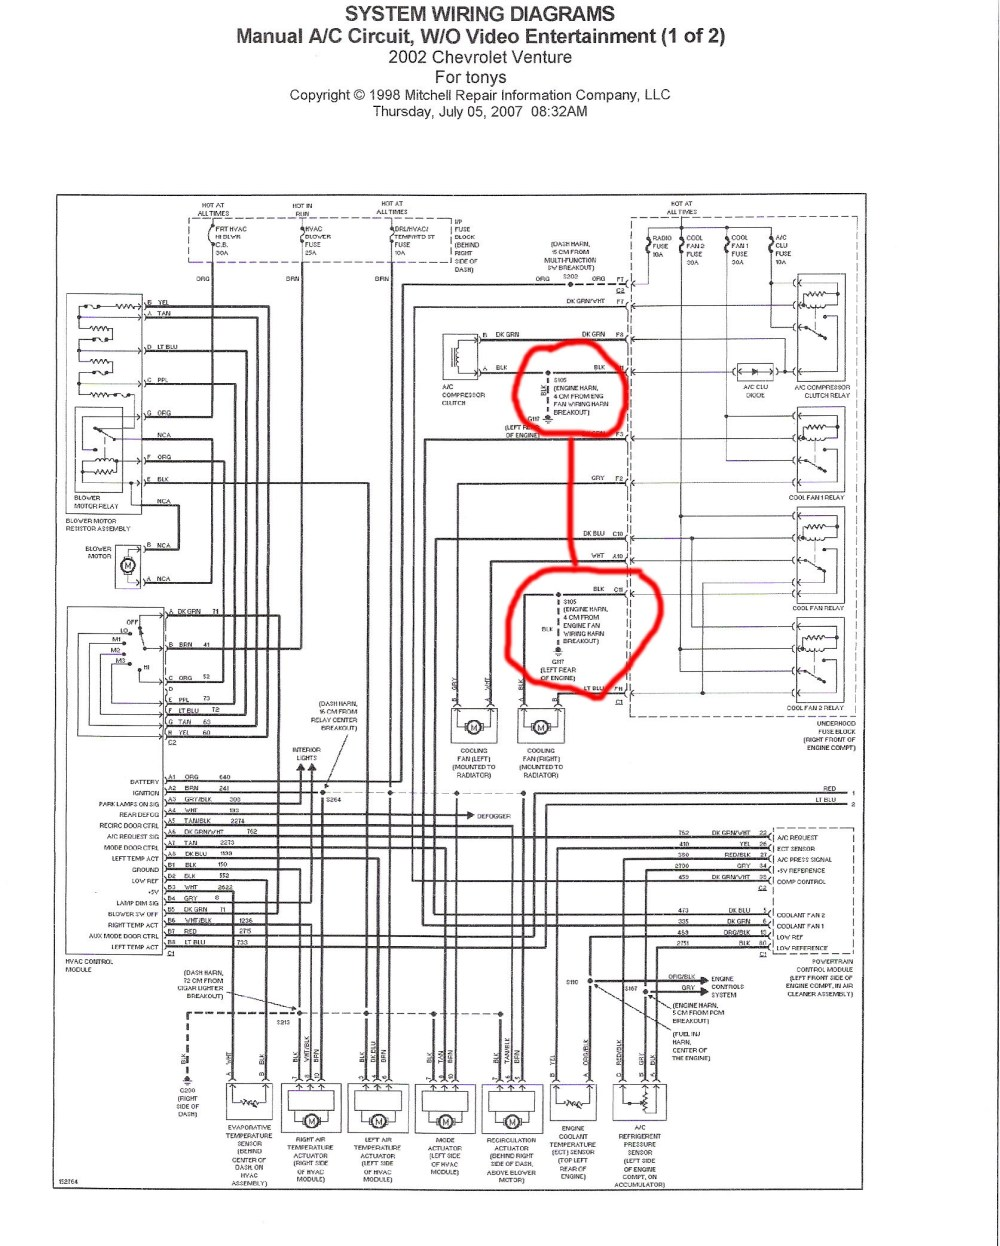 medium resolution of 2001 chevy cavalier cooling fan wiring diagram wiring diagram site 2001 chevy cavalier cooling fan wiring diagram